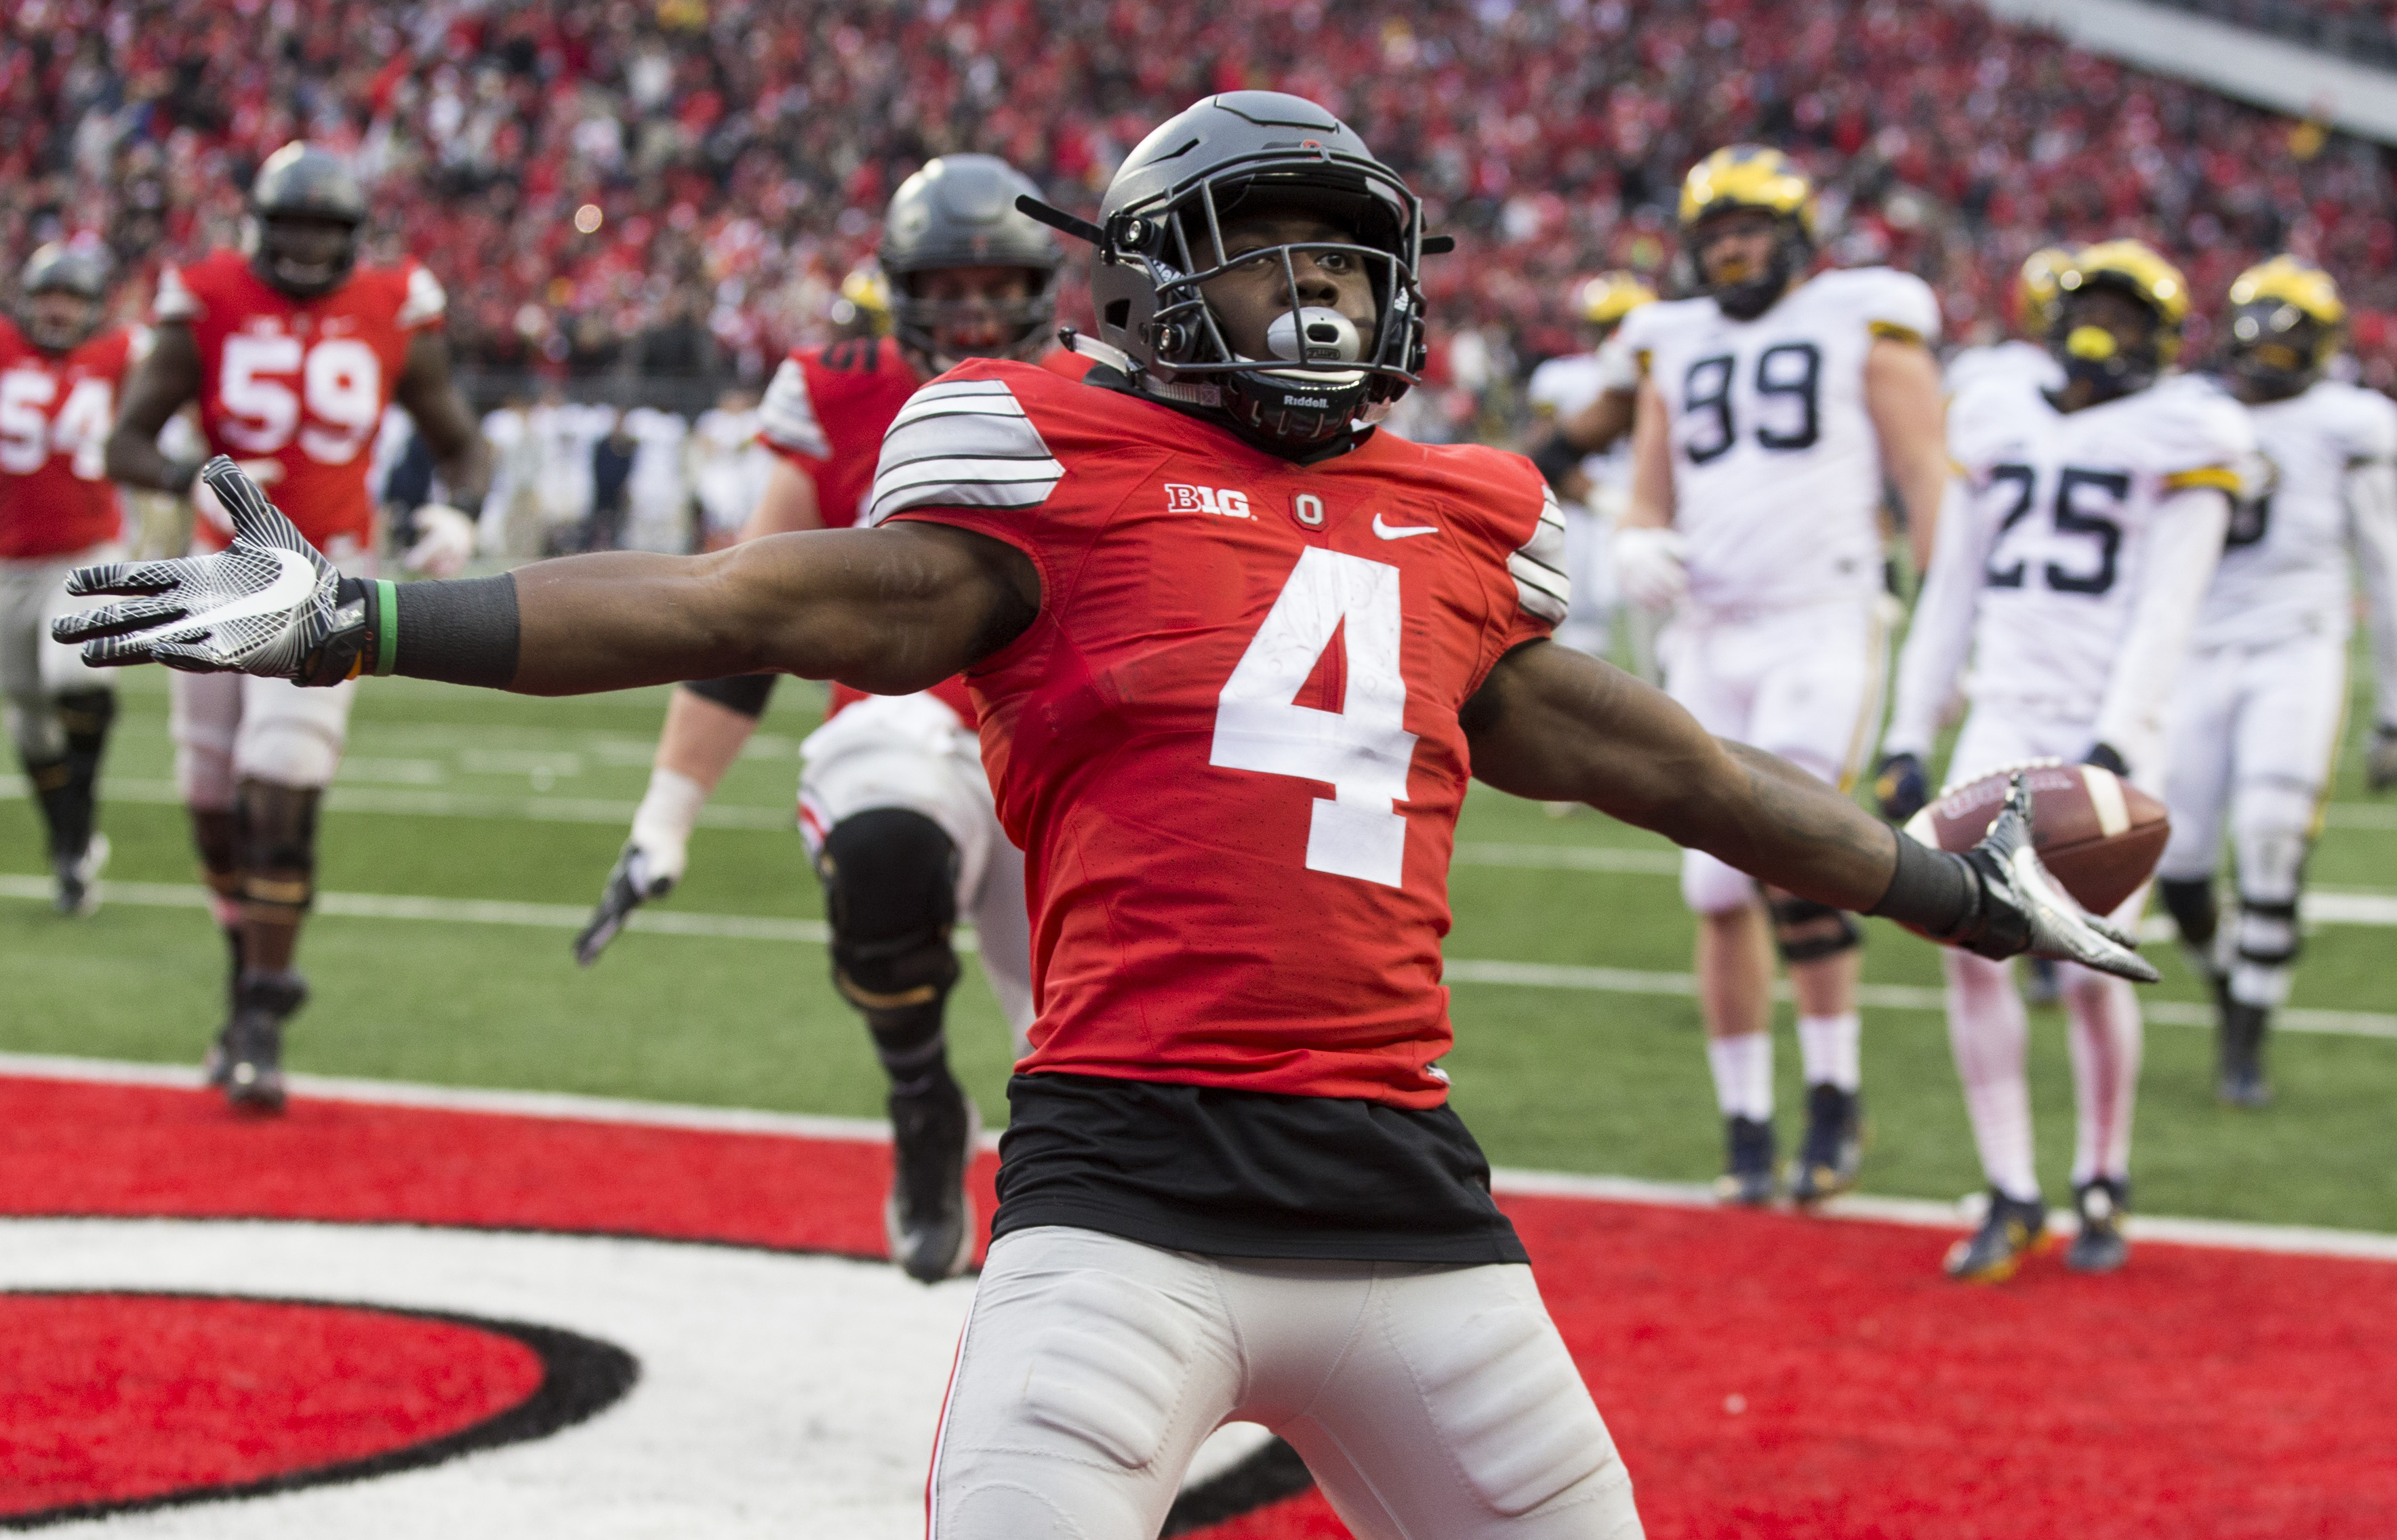 Ohio State Football: Buckeyes in Post Combine NFL Mock Drafts